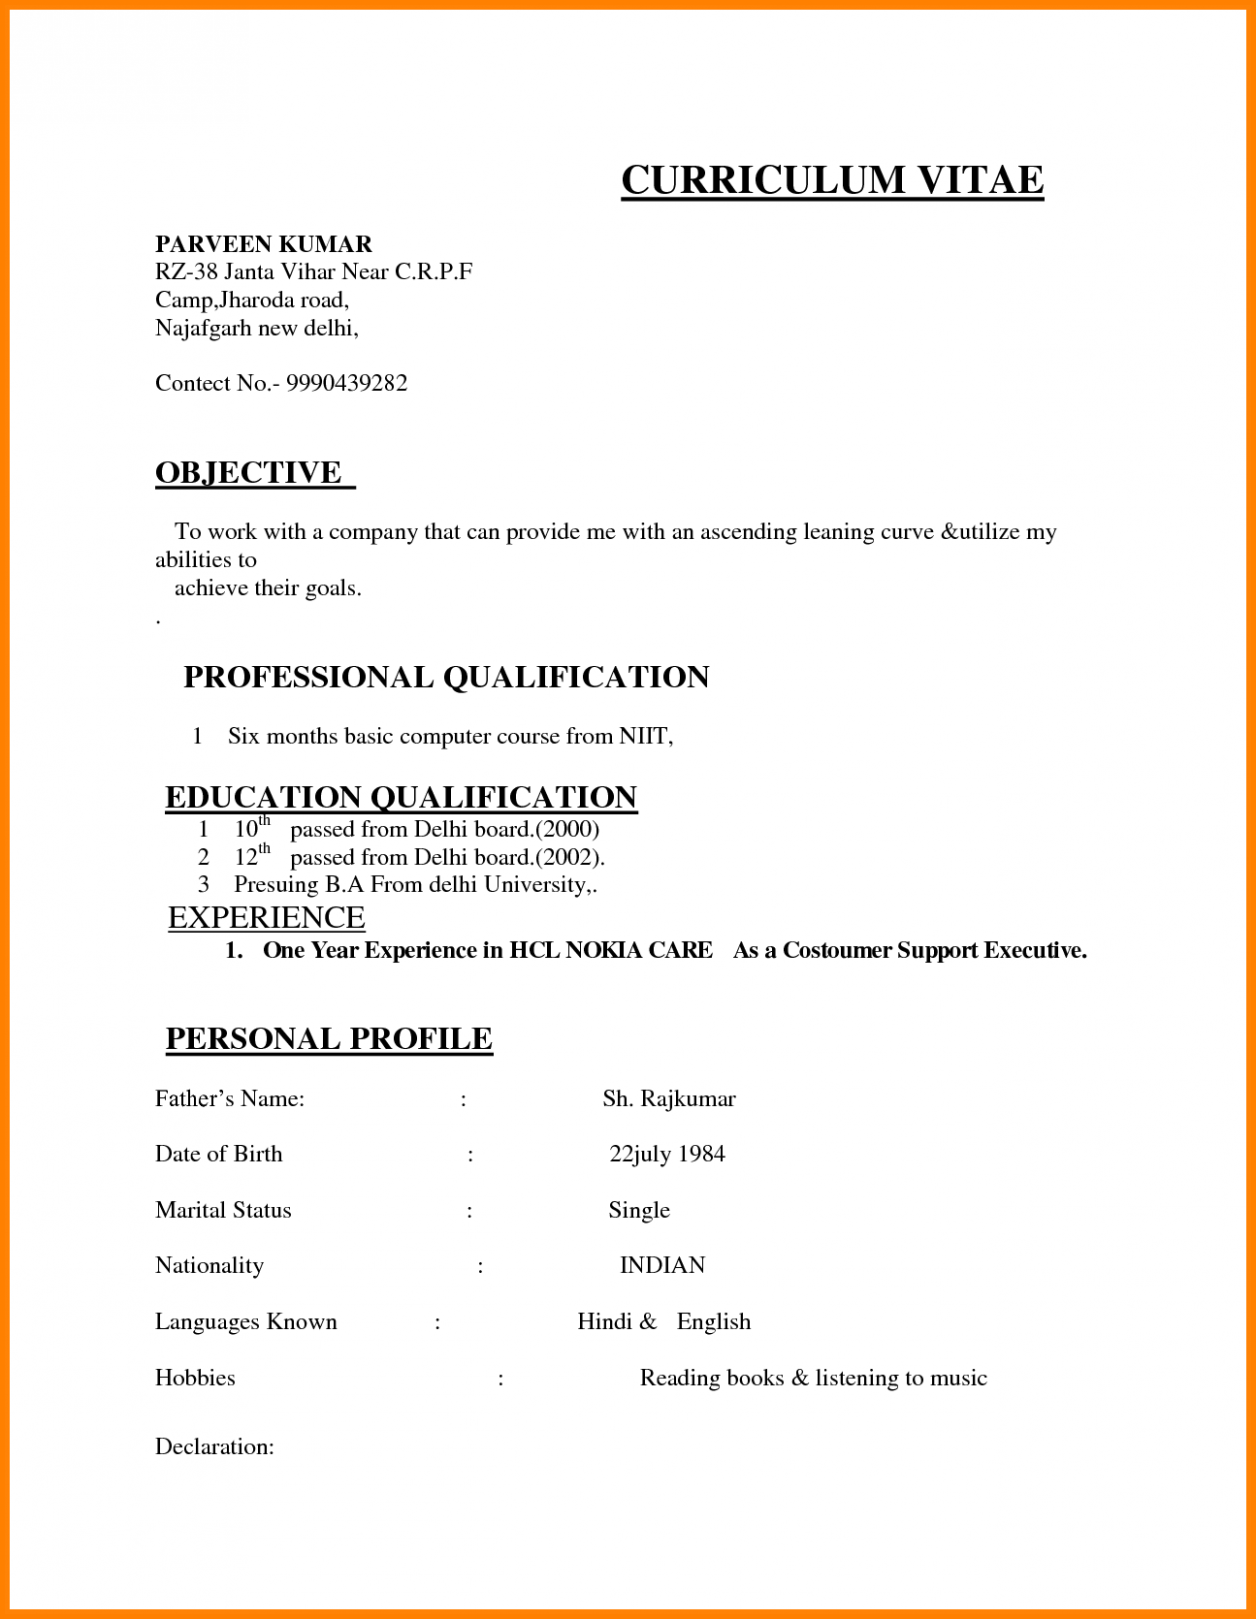 Normal Resume For Job Application Huroncountychamber Com